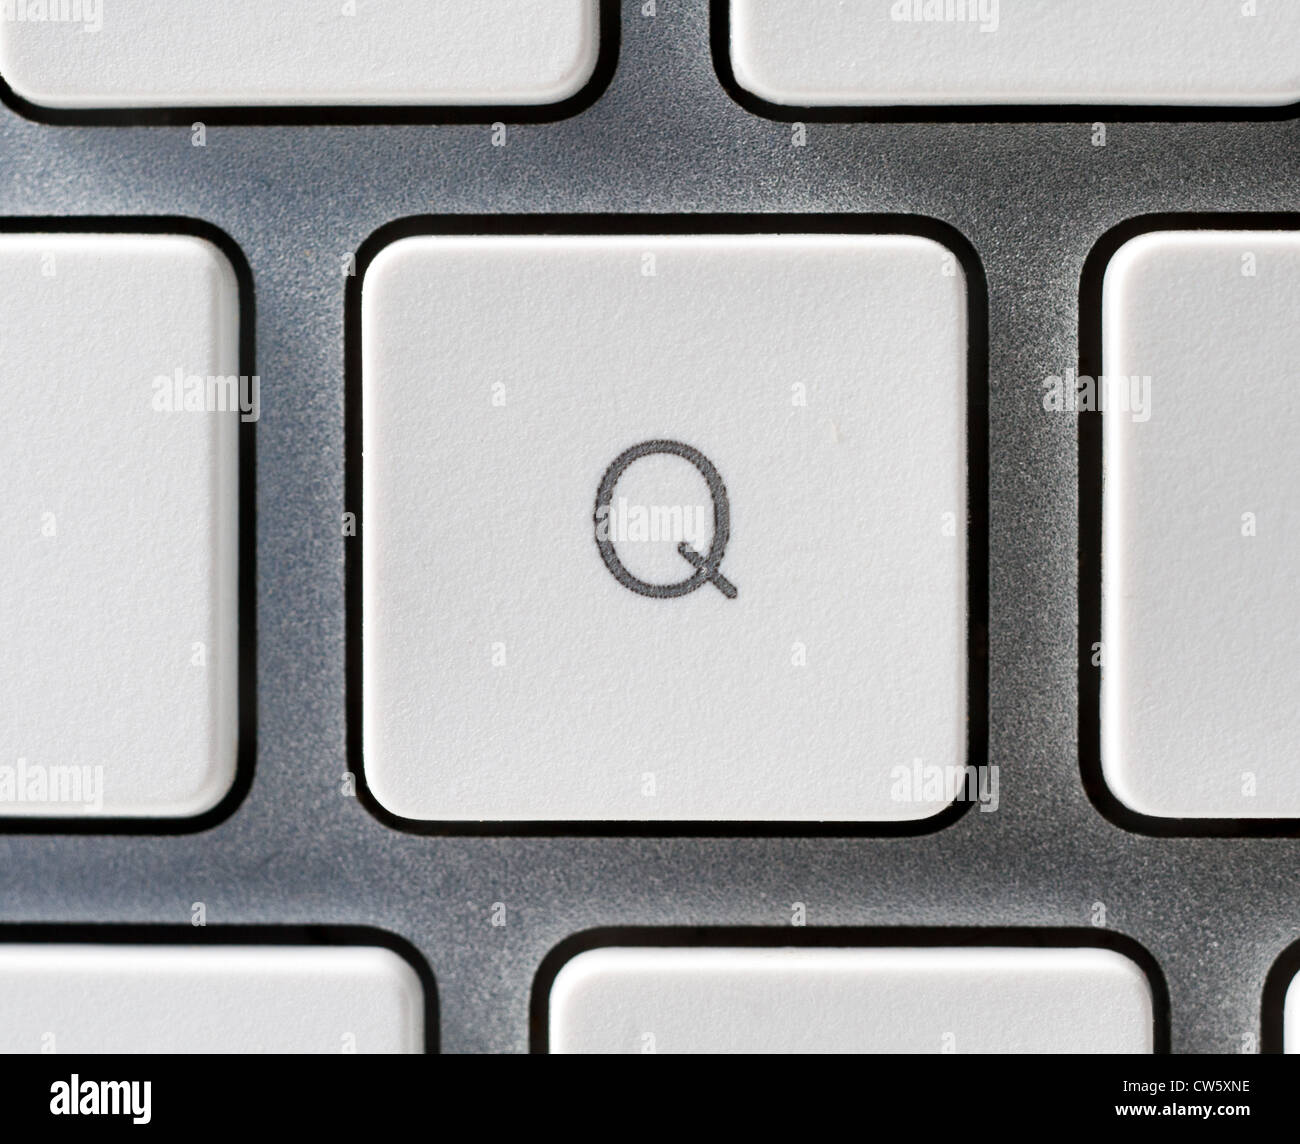 Letter Q on an Apple keyboard - Stock Image